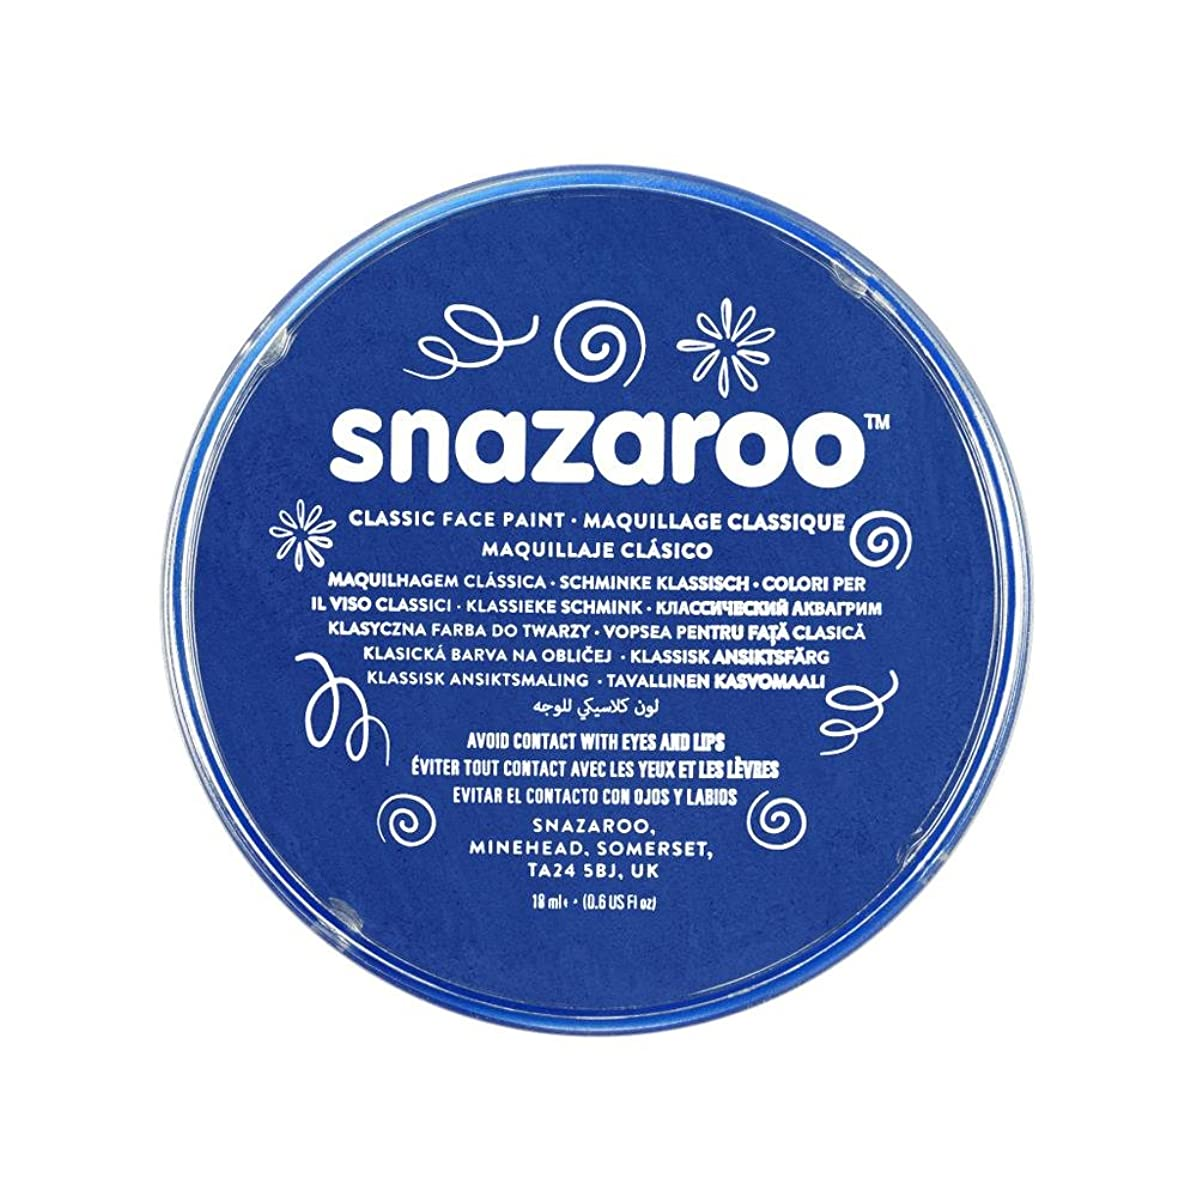 Snazaroo 1118344 Classic Face Paint, 18ml, Royal Blue